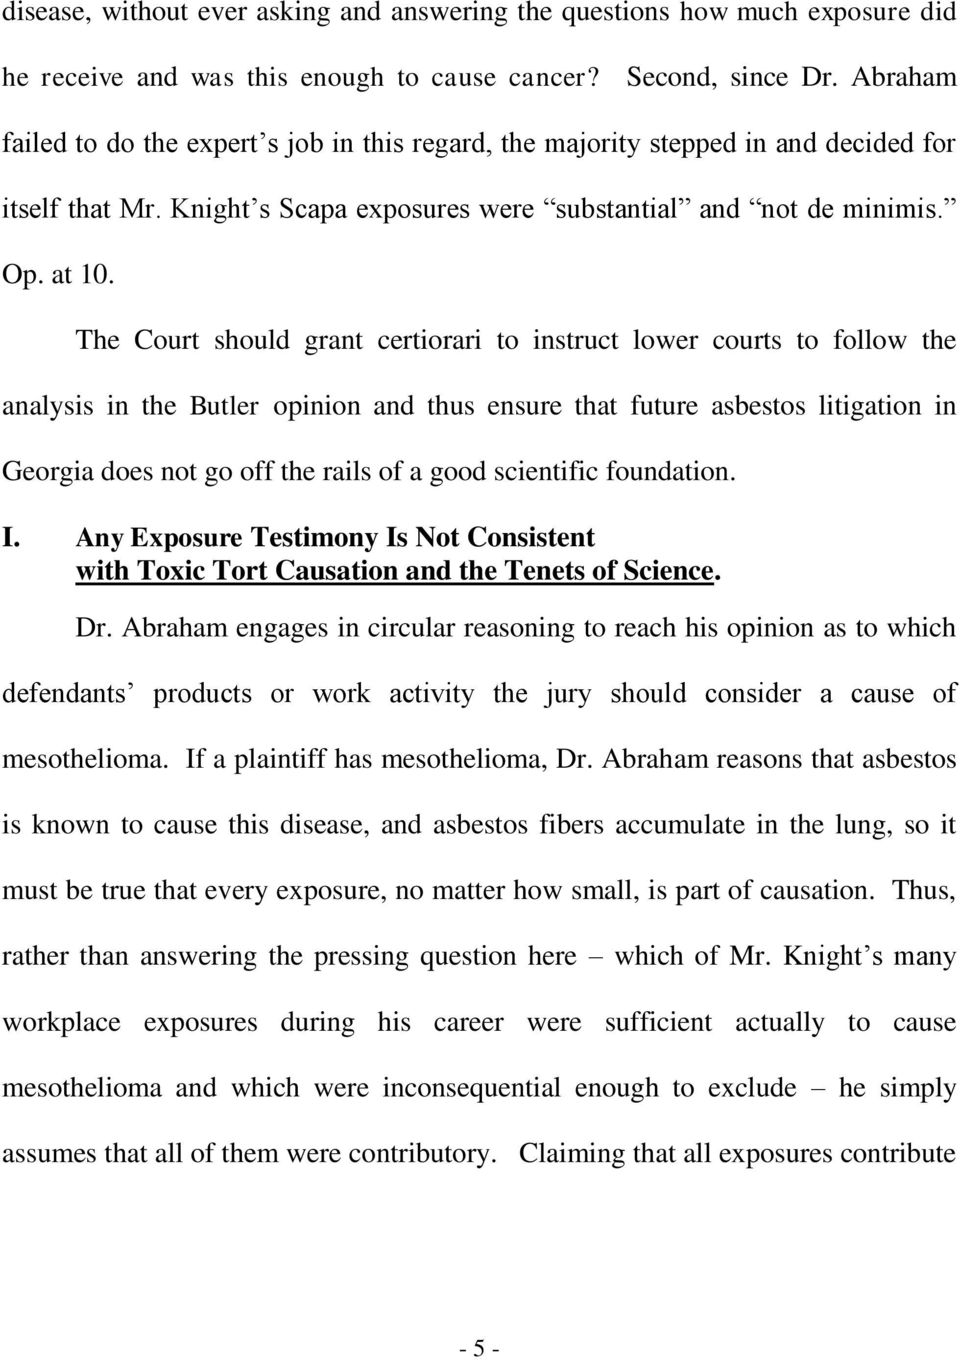 The Court should grant certiorari to instruct lower courts to follow the analysis in the Butler opinion and thus ensure that future asbestos litigation in Georgia does not go off the rails of a good